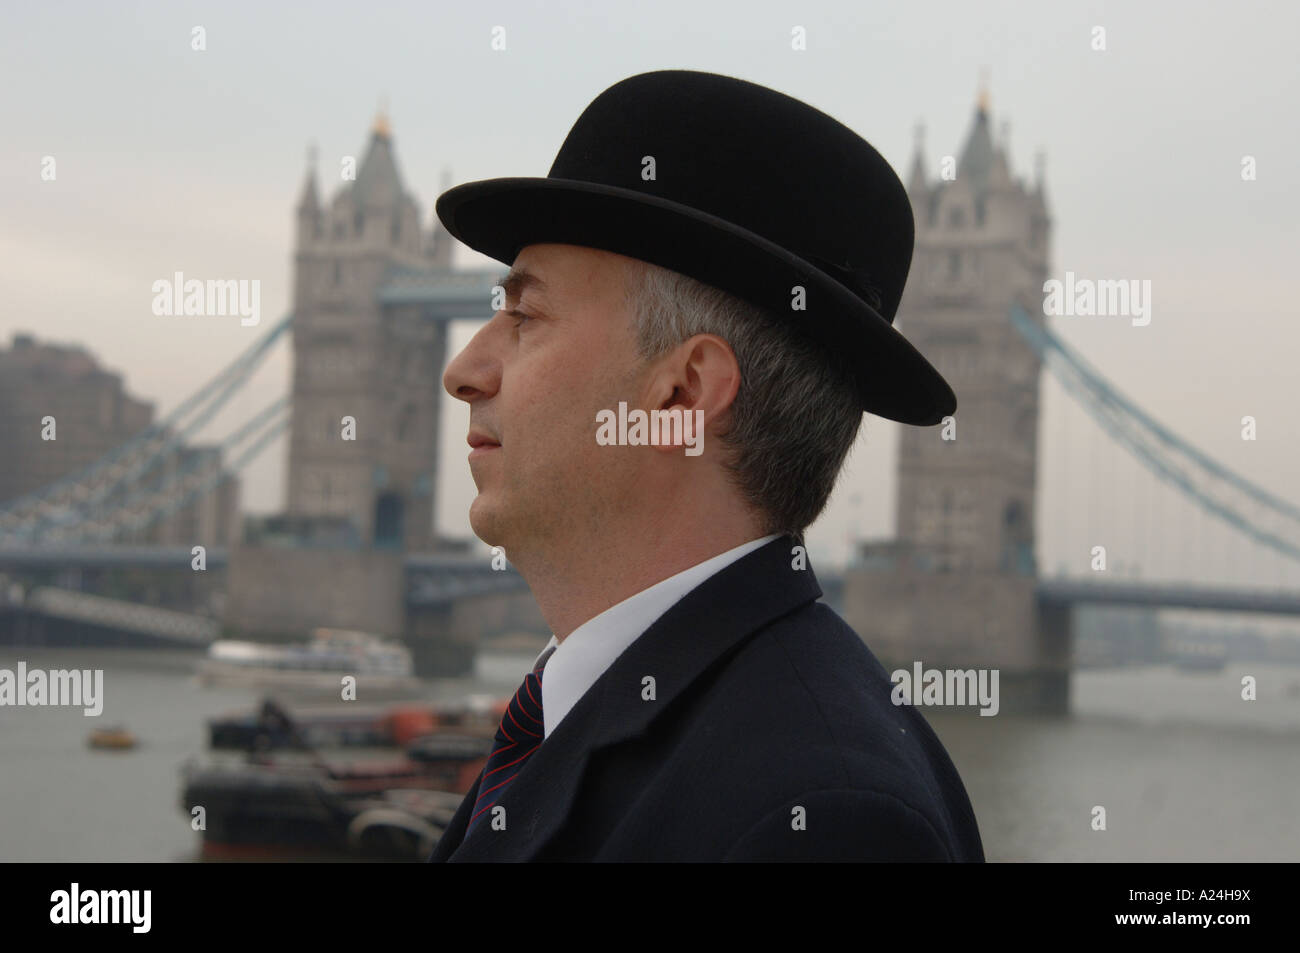 Traditional British city gent in bowler hat and business suit by Tower Bridge, London, UK - Stock Image